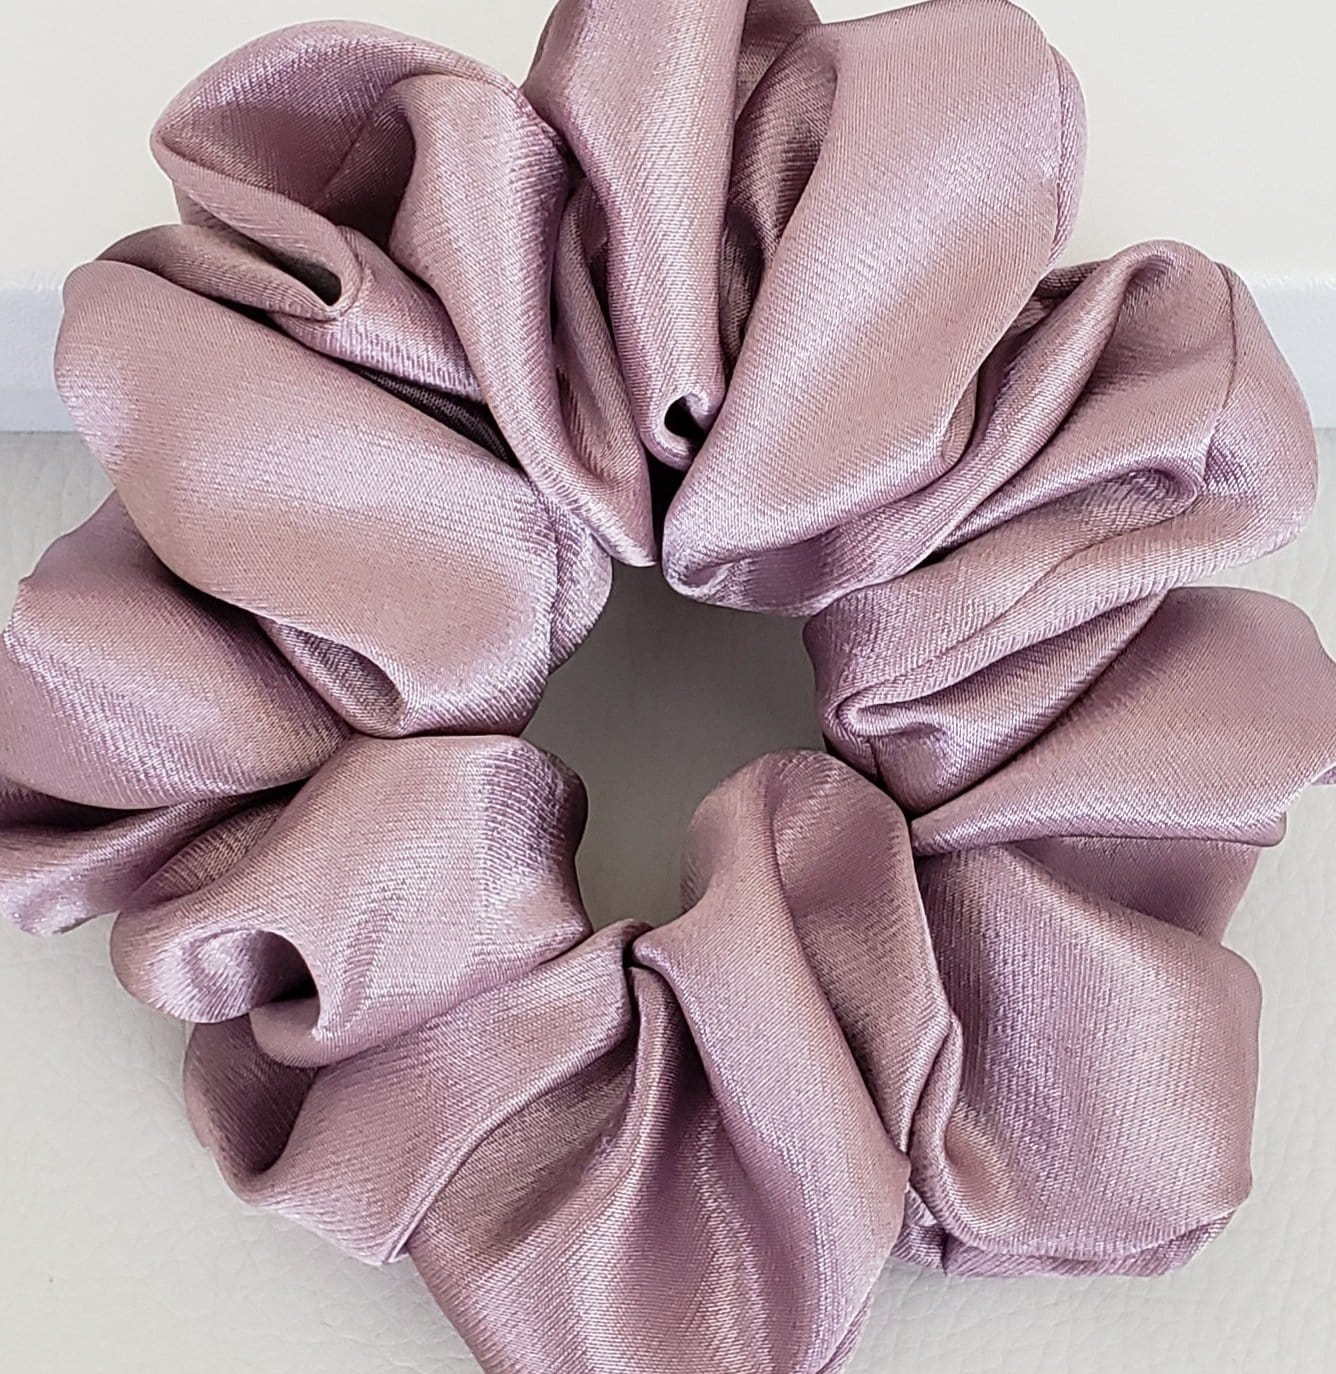 100% Mulberry Silk Lavender Scrunchies - Fashion Mode Gallery